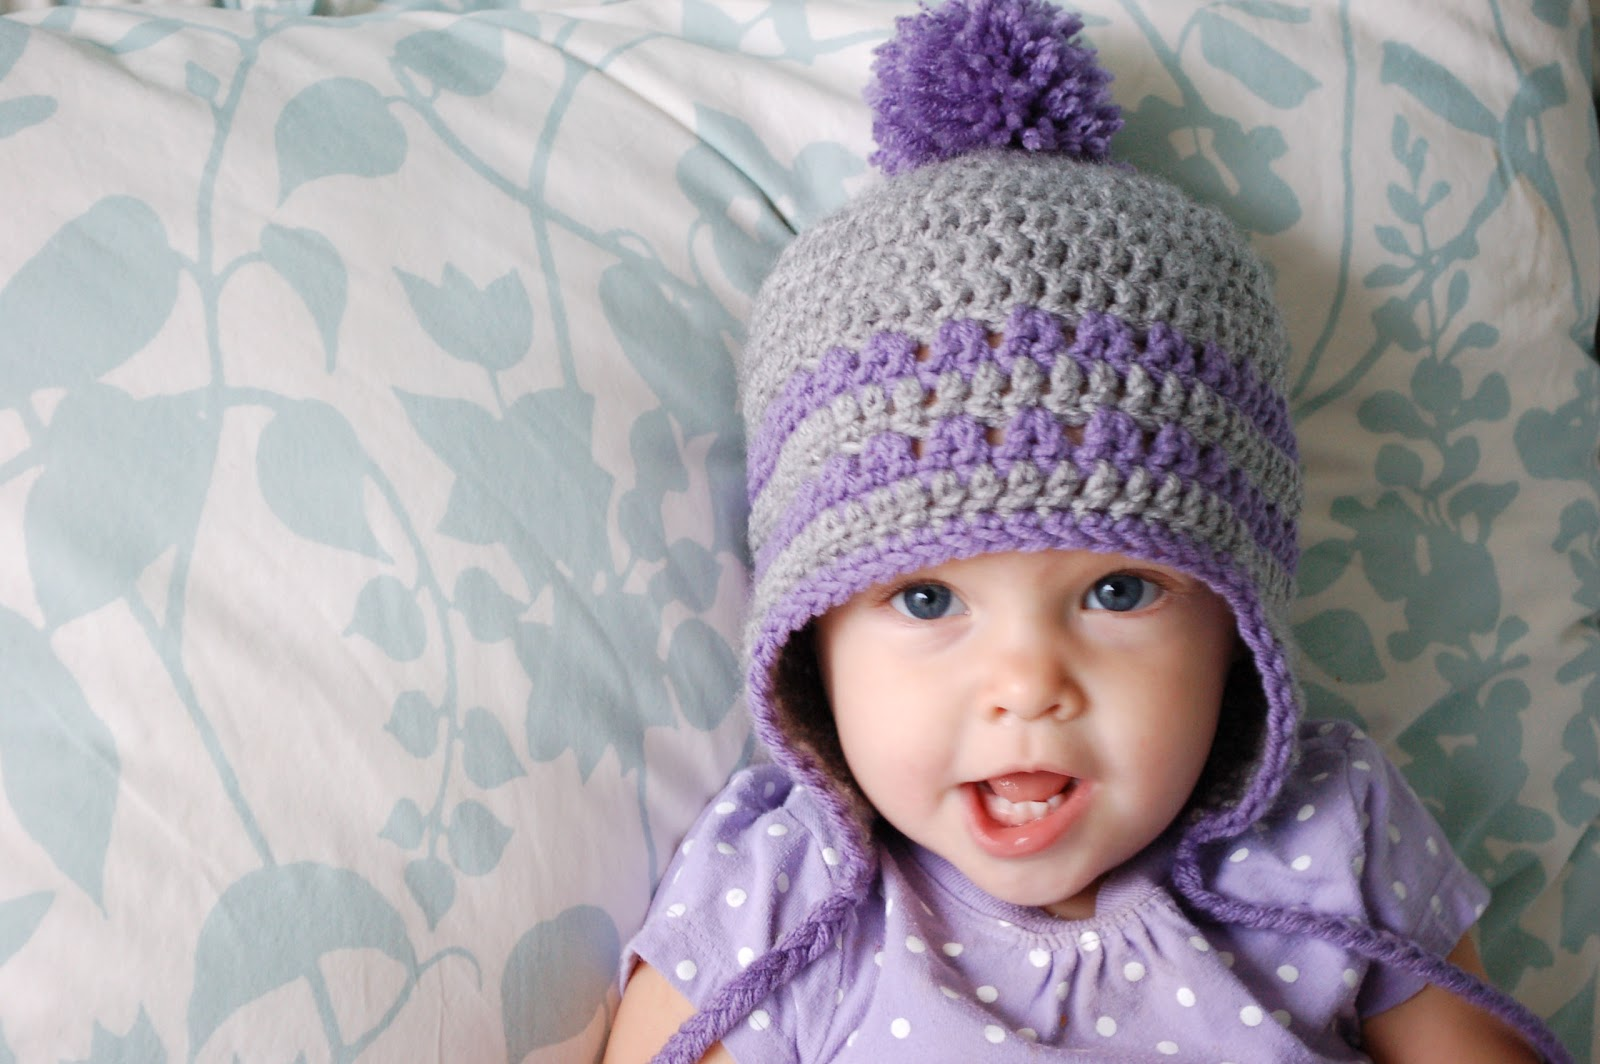 Crochet Baby Hat Patterns 6 Months : Alli Crafts: Free Pattern: Earflap Hat - 9-12 Months